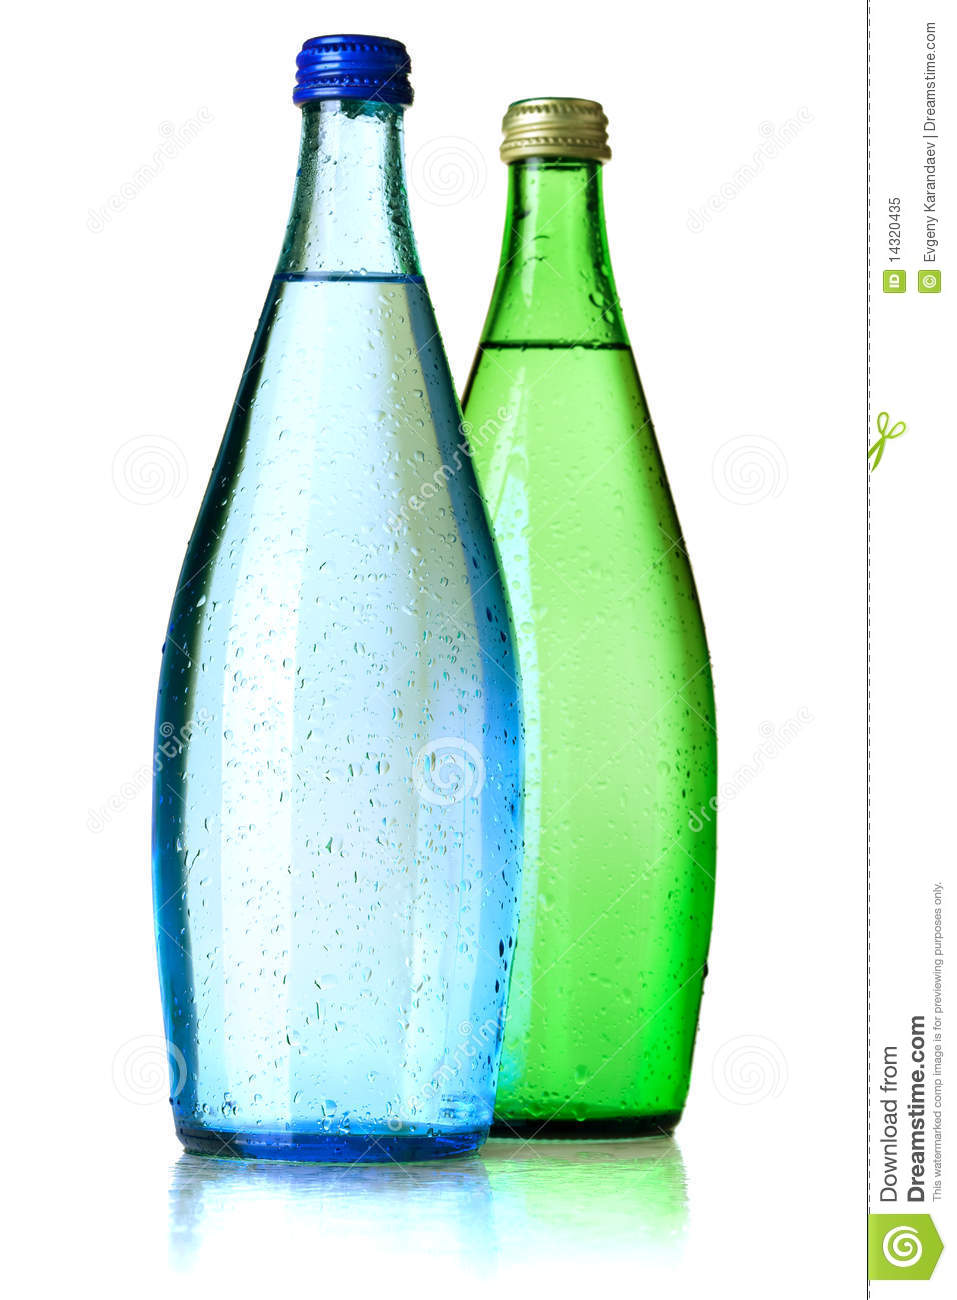 Two Bottles Of Soda Water Royalty Free Stock Photo - Image: 14320435